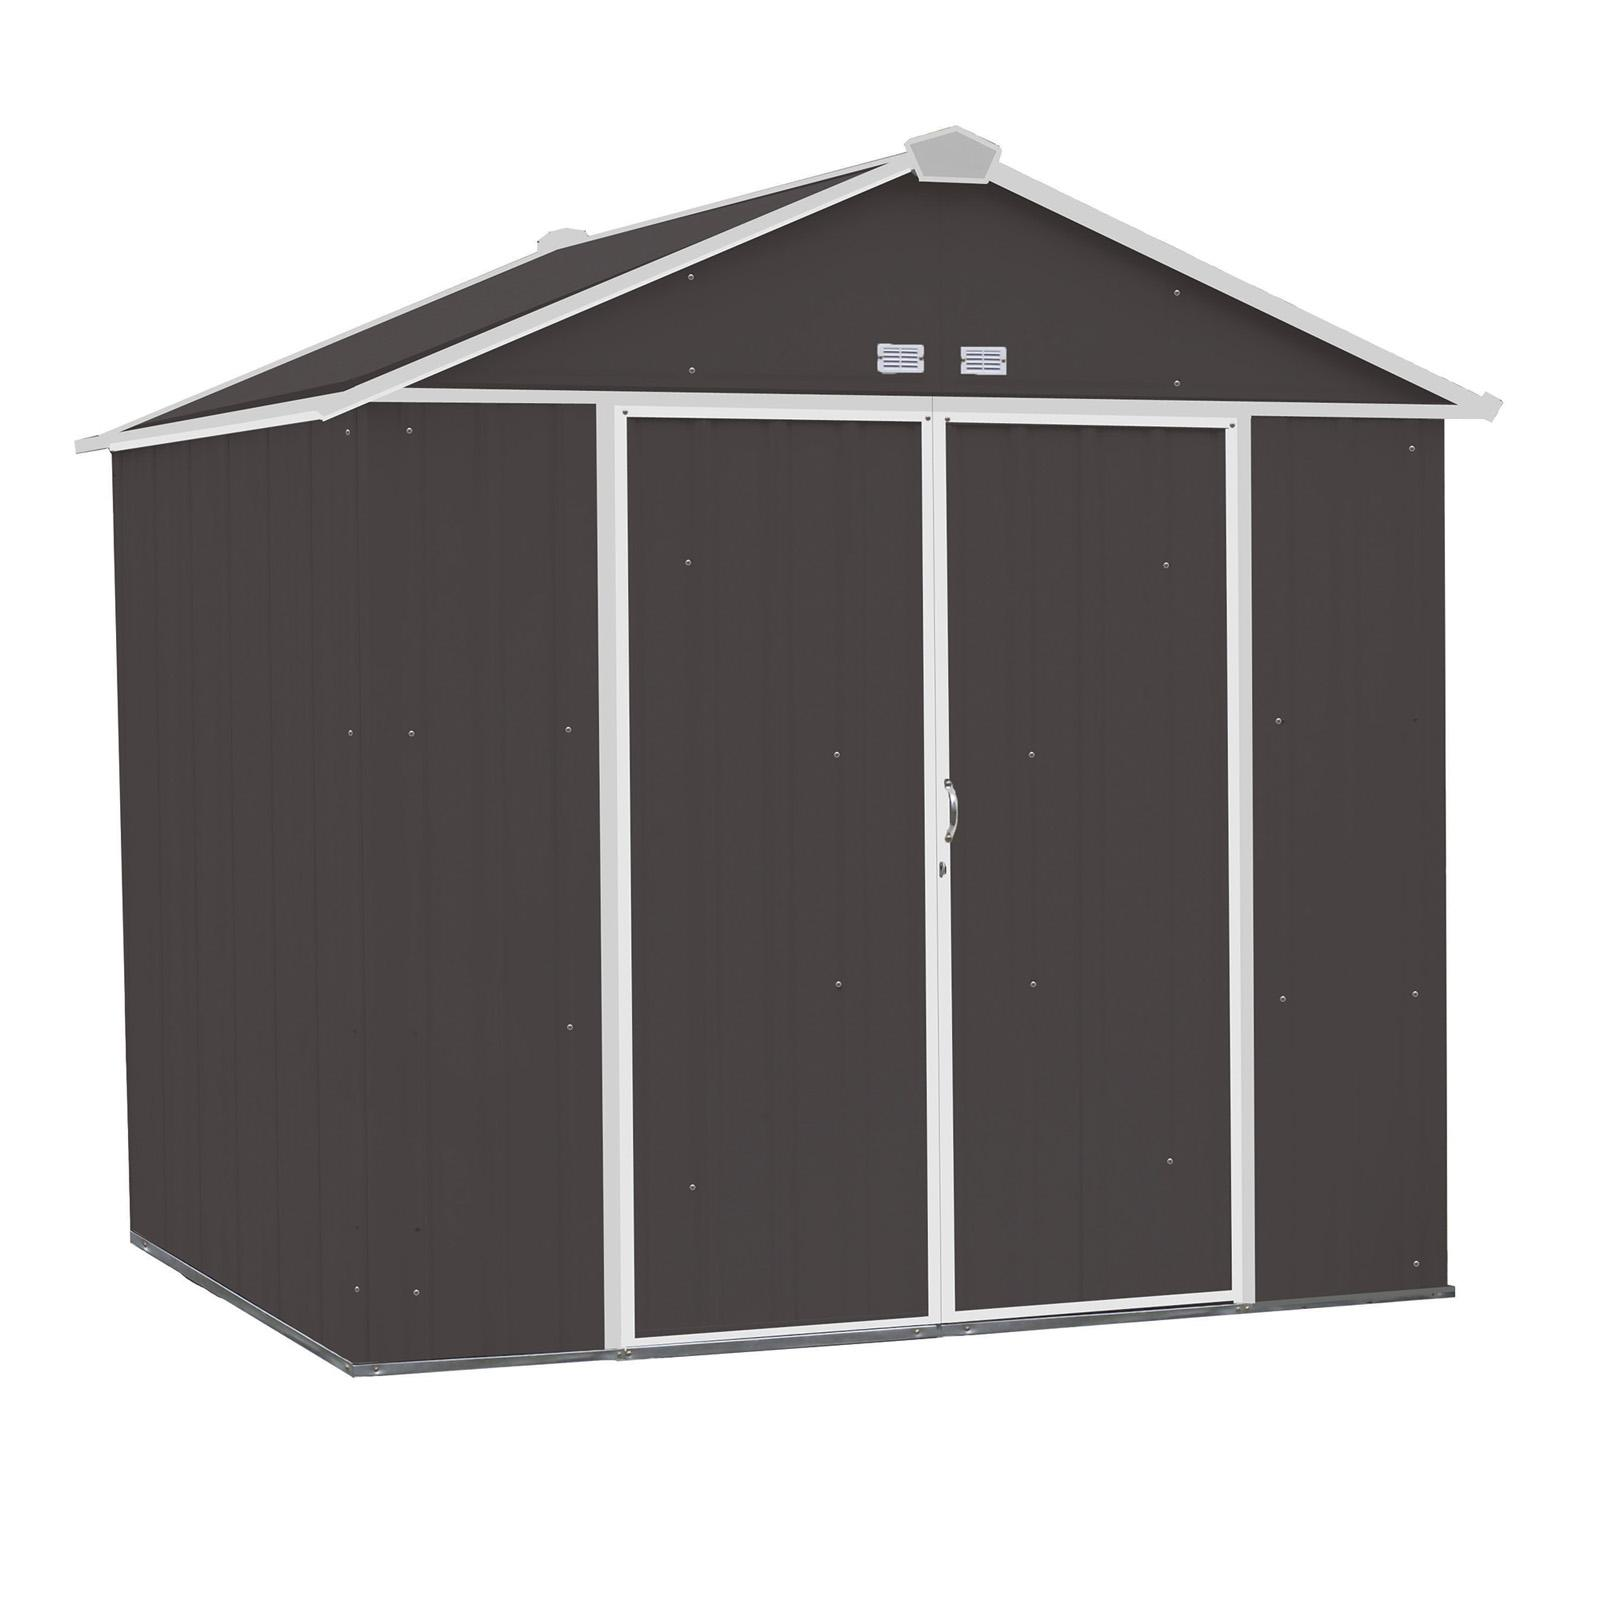 Arrow 8 x 7 ft. Outdoor Steel EZEE Storage Shed - EZ8772HVCCCR